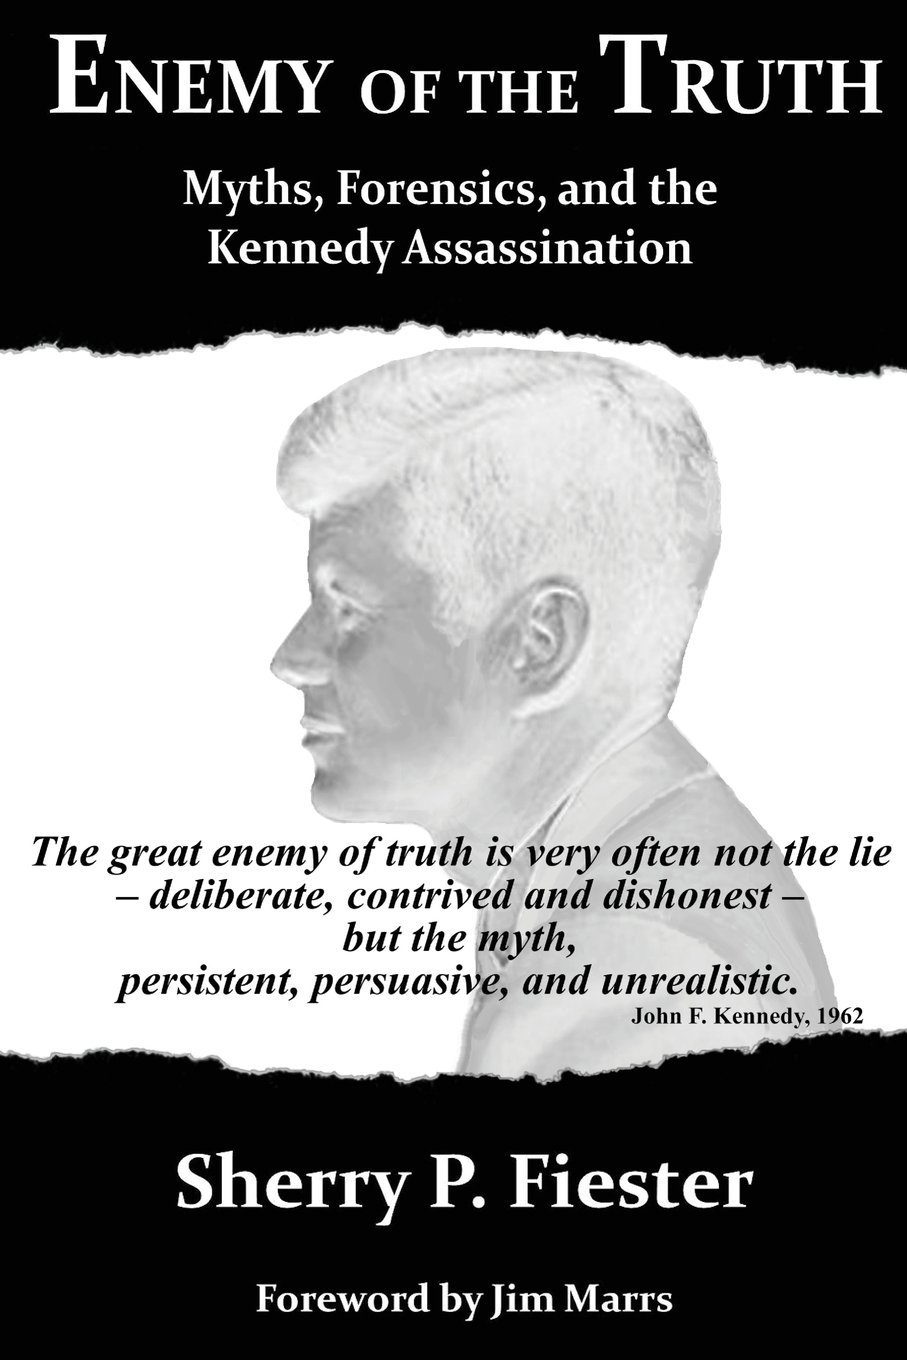 Download Enemy of the Truth, Myths, Forensics, and the Kennedy Assassination PDF